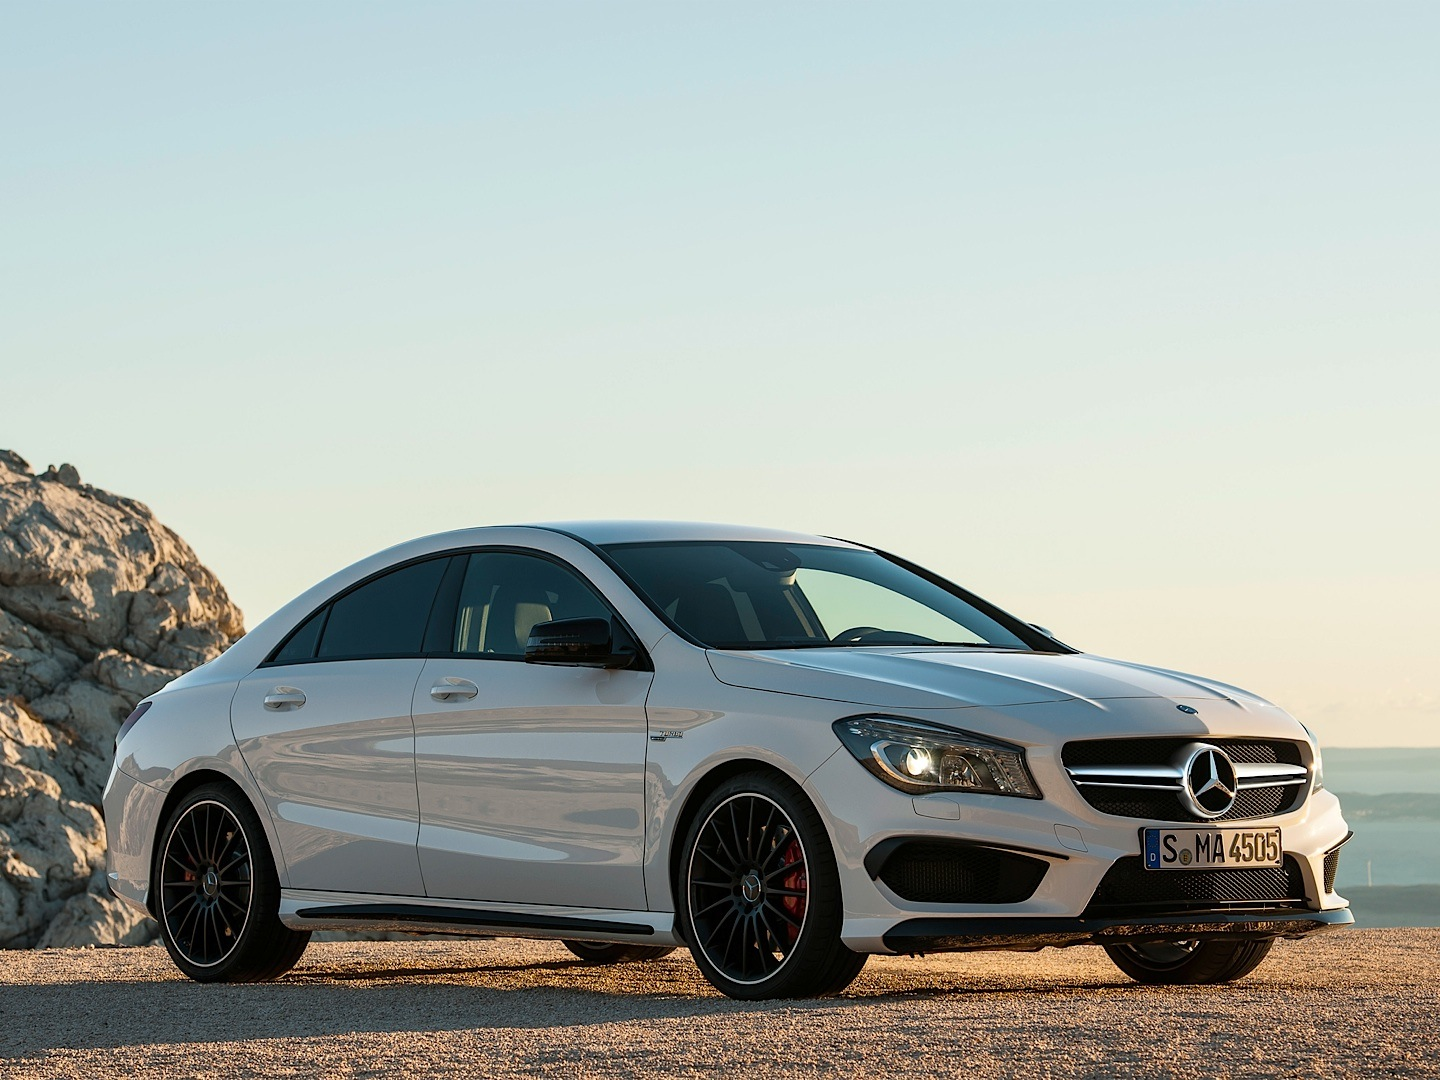 Mercedes benz cla 45 amg driven by vadimauto autoevolution for Mercedes benz cla 45